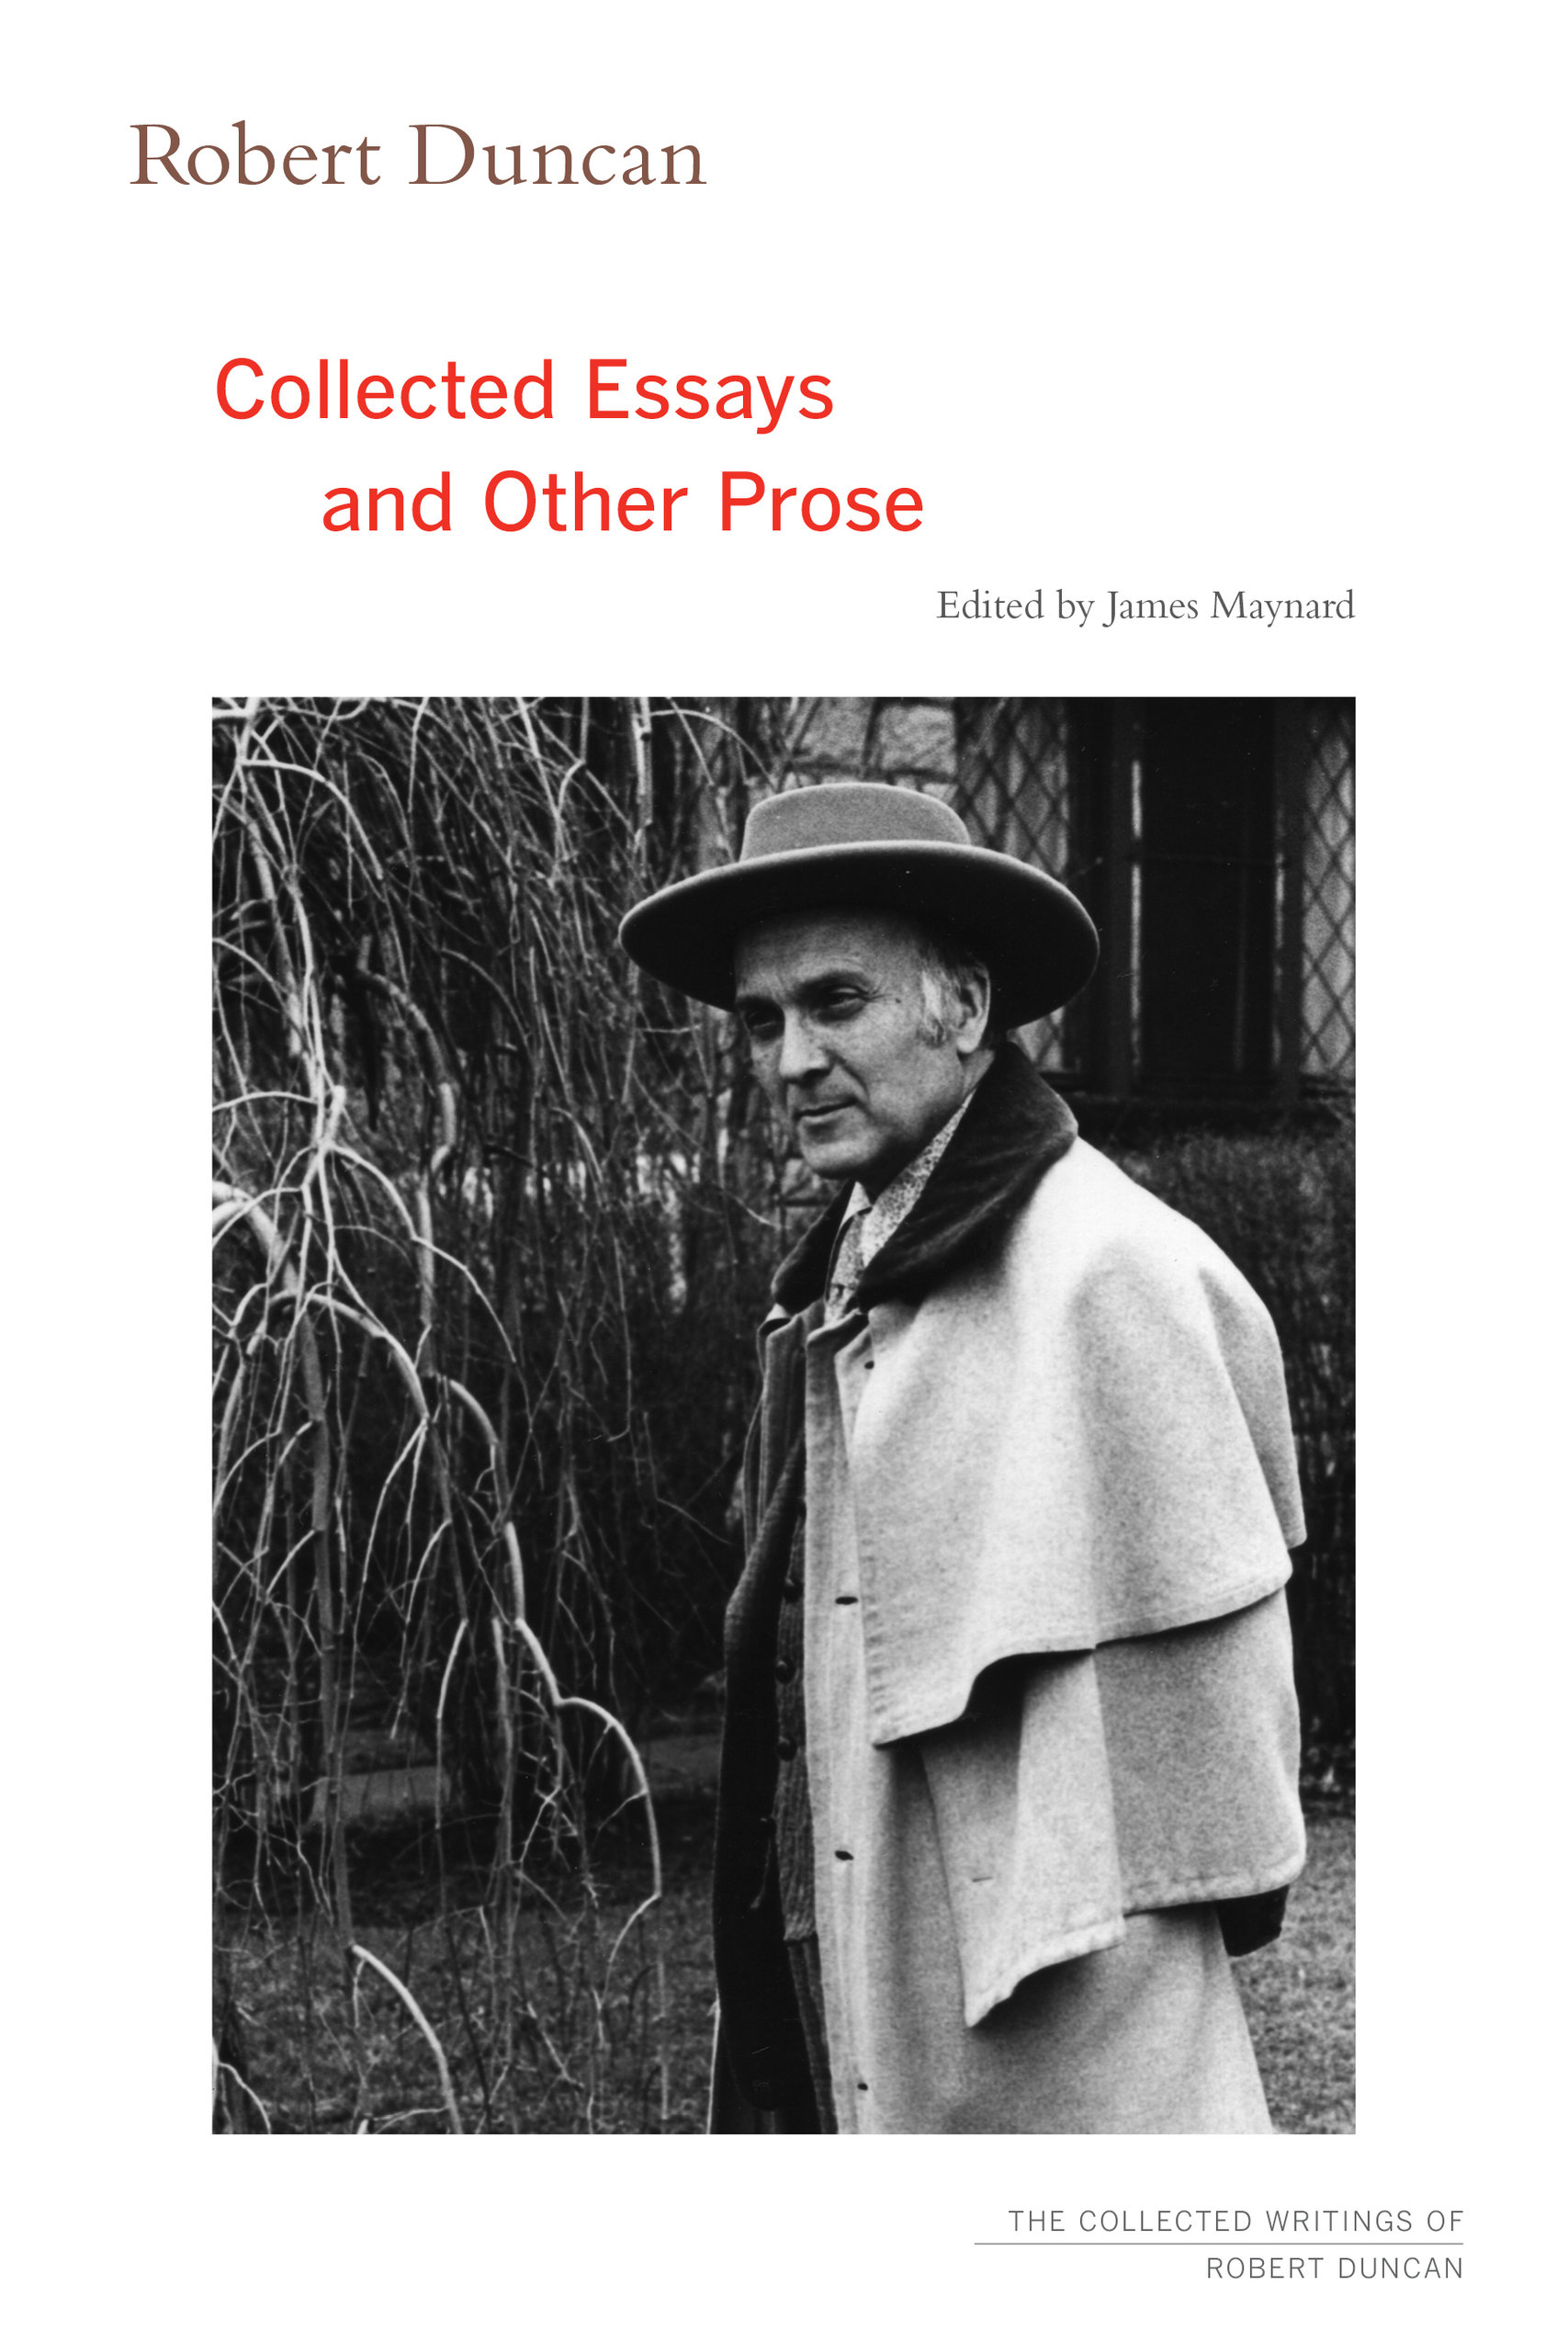 a biography of robert edward duncan a poet Robert duncan 419 likes robert edward duncan was an american poet and a devotee of hd and the western esoteric tradition who spent most of his career.